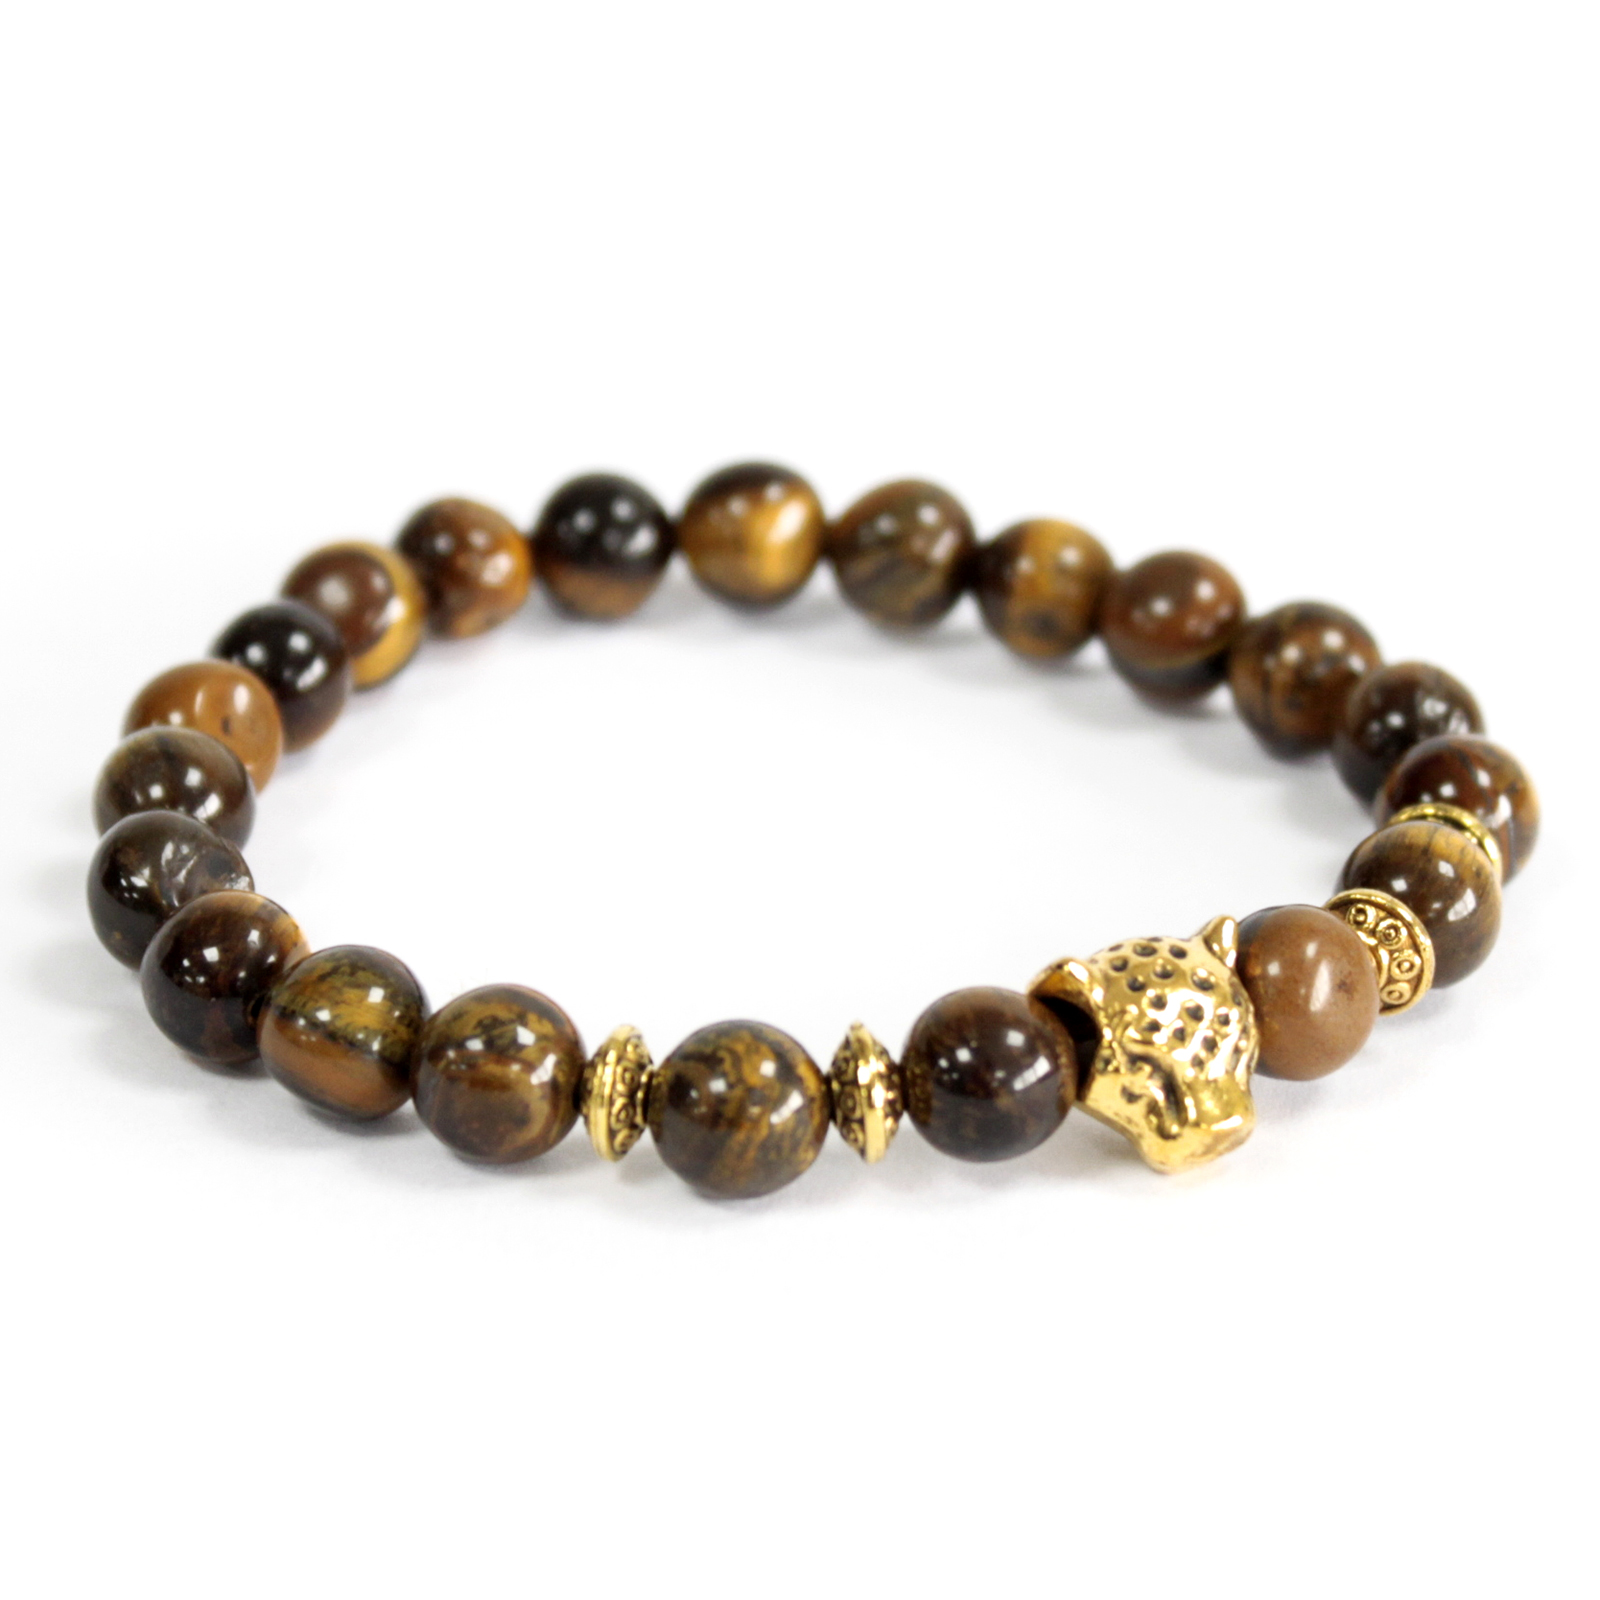 3x Gold Tiger / Tiger Eye - Gemstone Bracelet